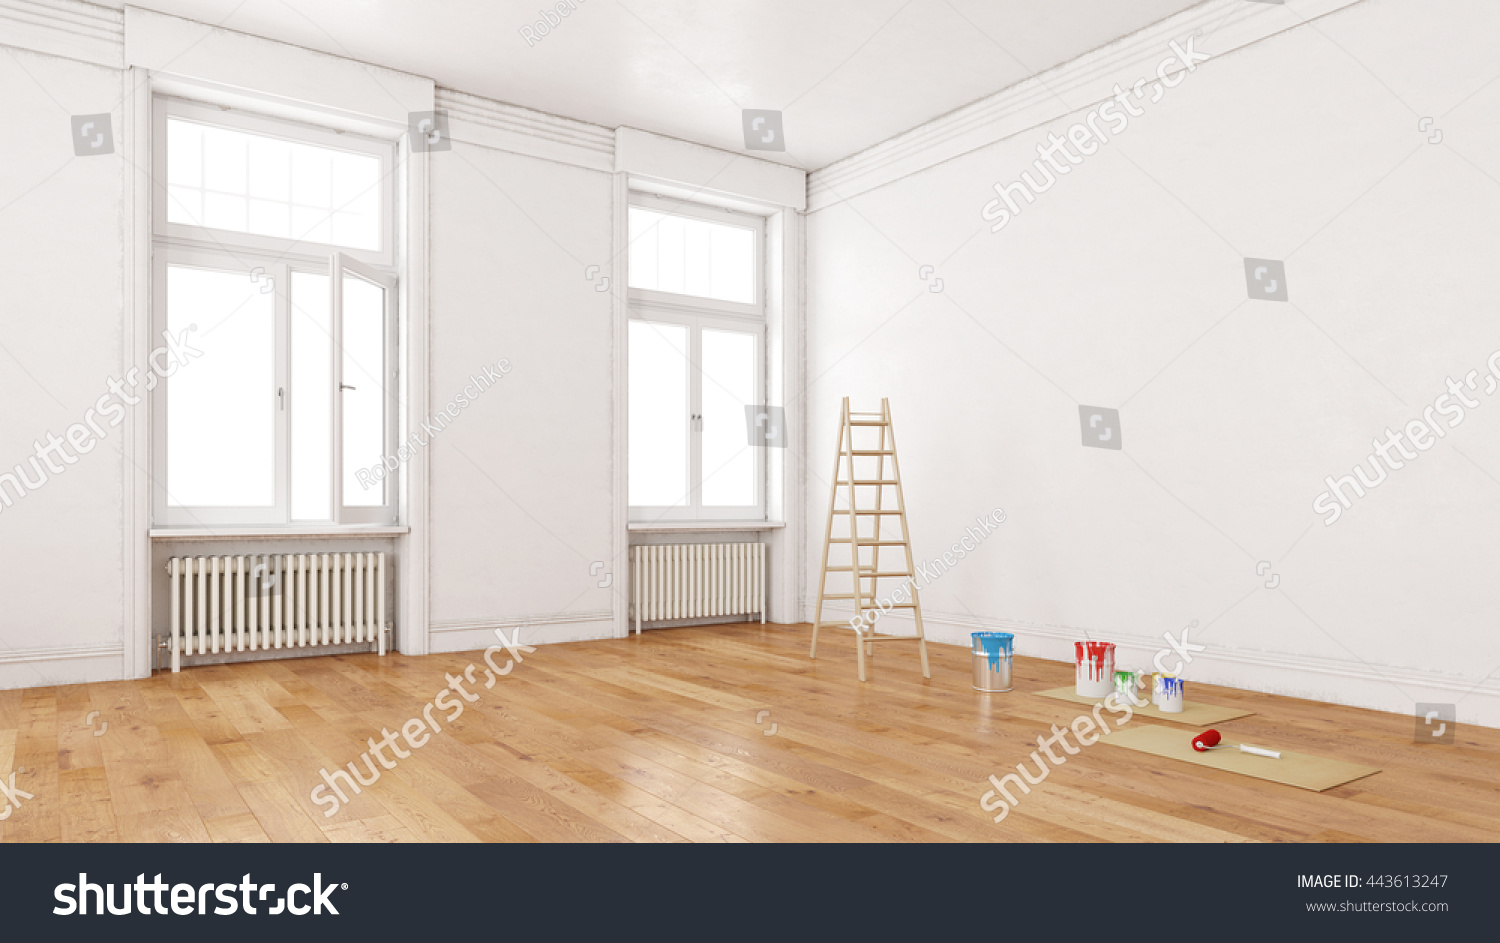 Dirty Walls Room During Renovation Ladder Stock Illustration ...